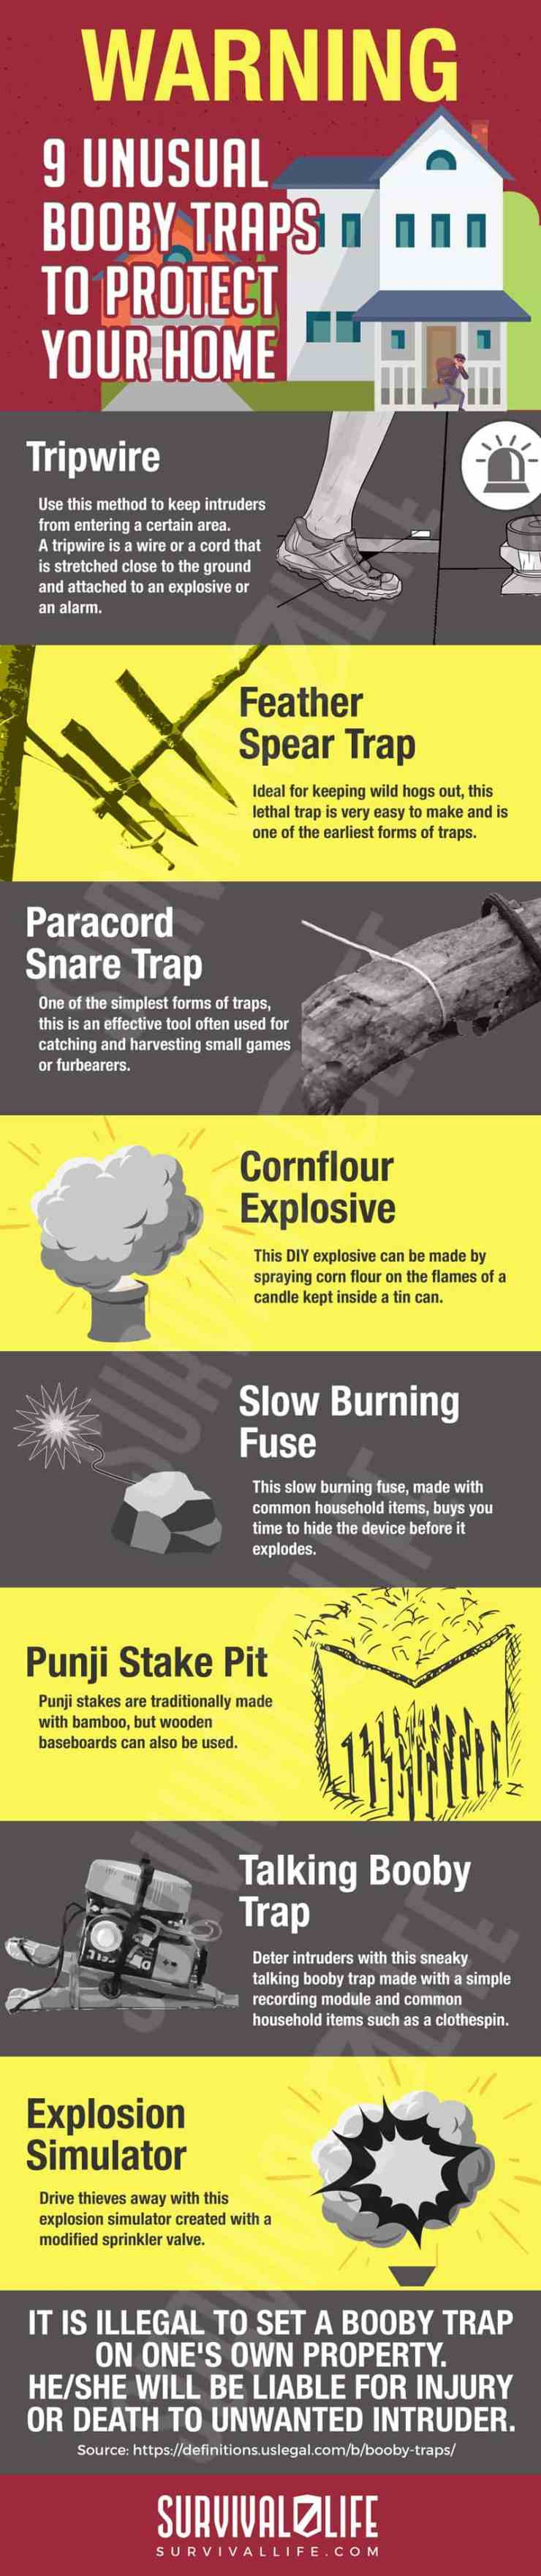 Infographic | Booby Traps Reminders | Unusual Booby Traps to Protect Your Home